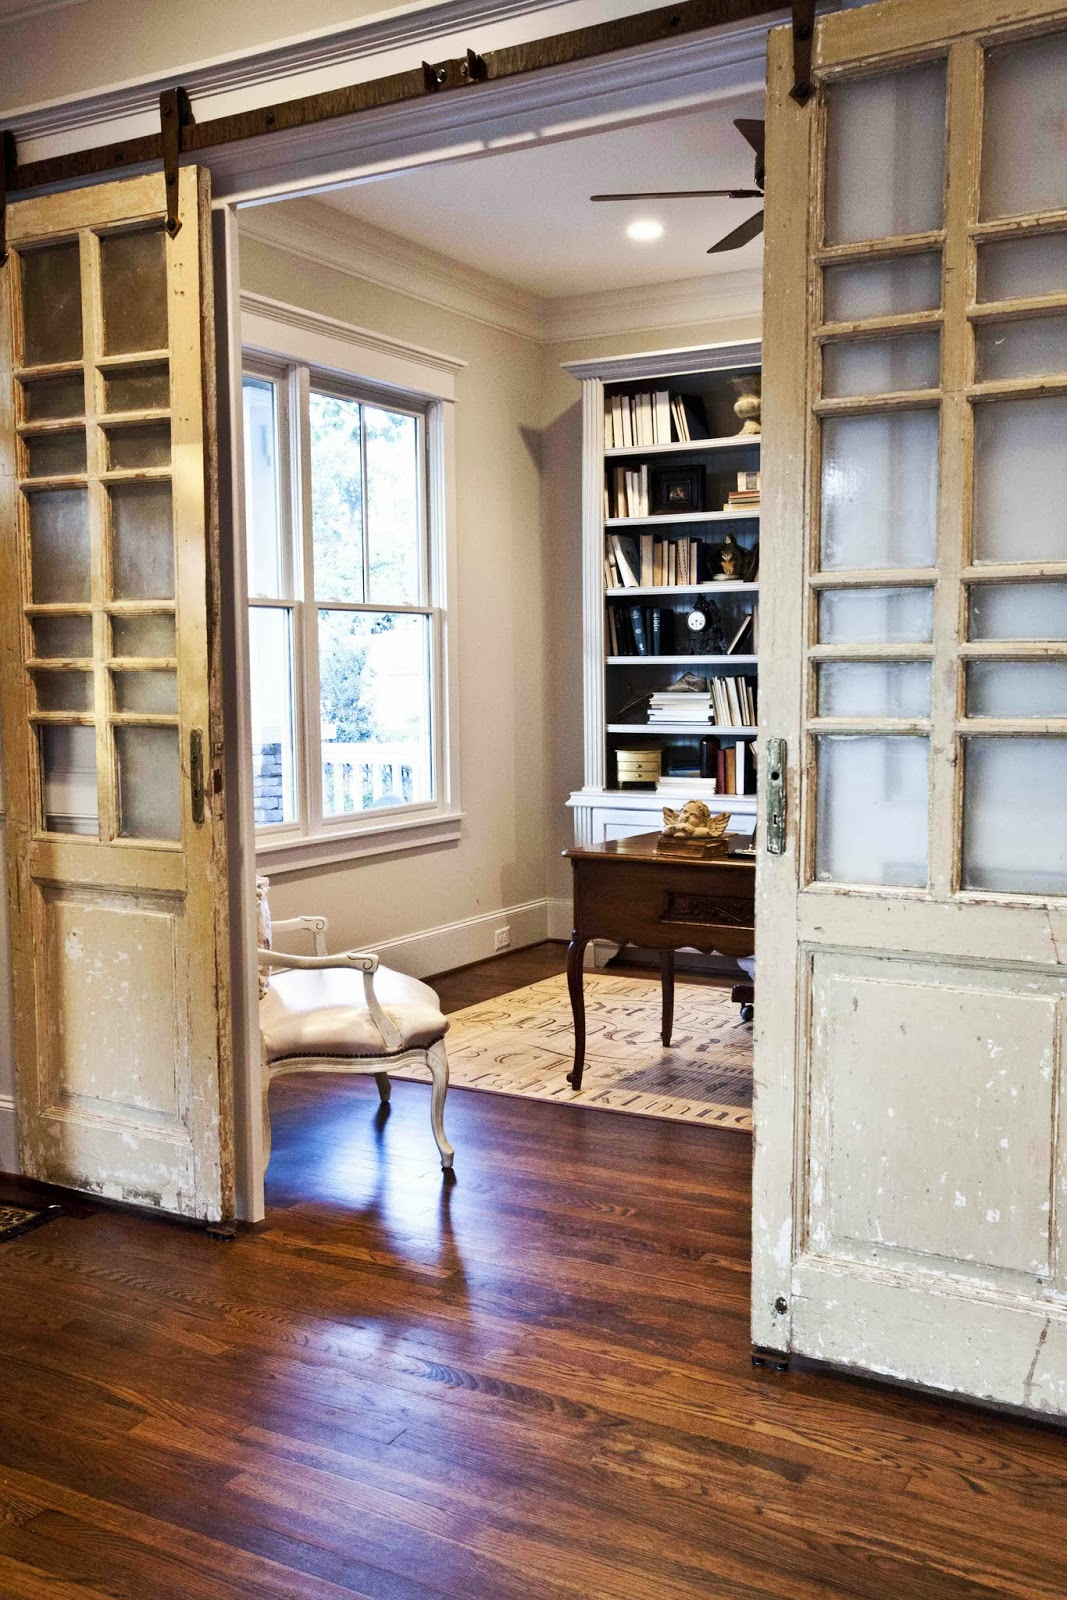 Study Room Door: 27 Awesome Sliding Barn Door Ideas For The Home